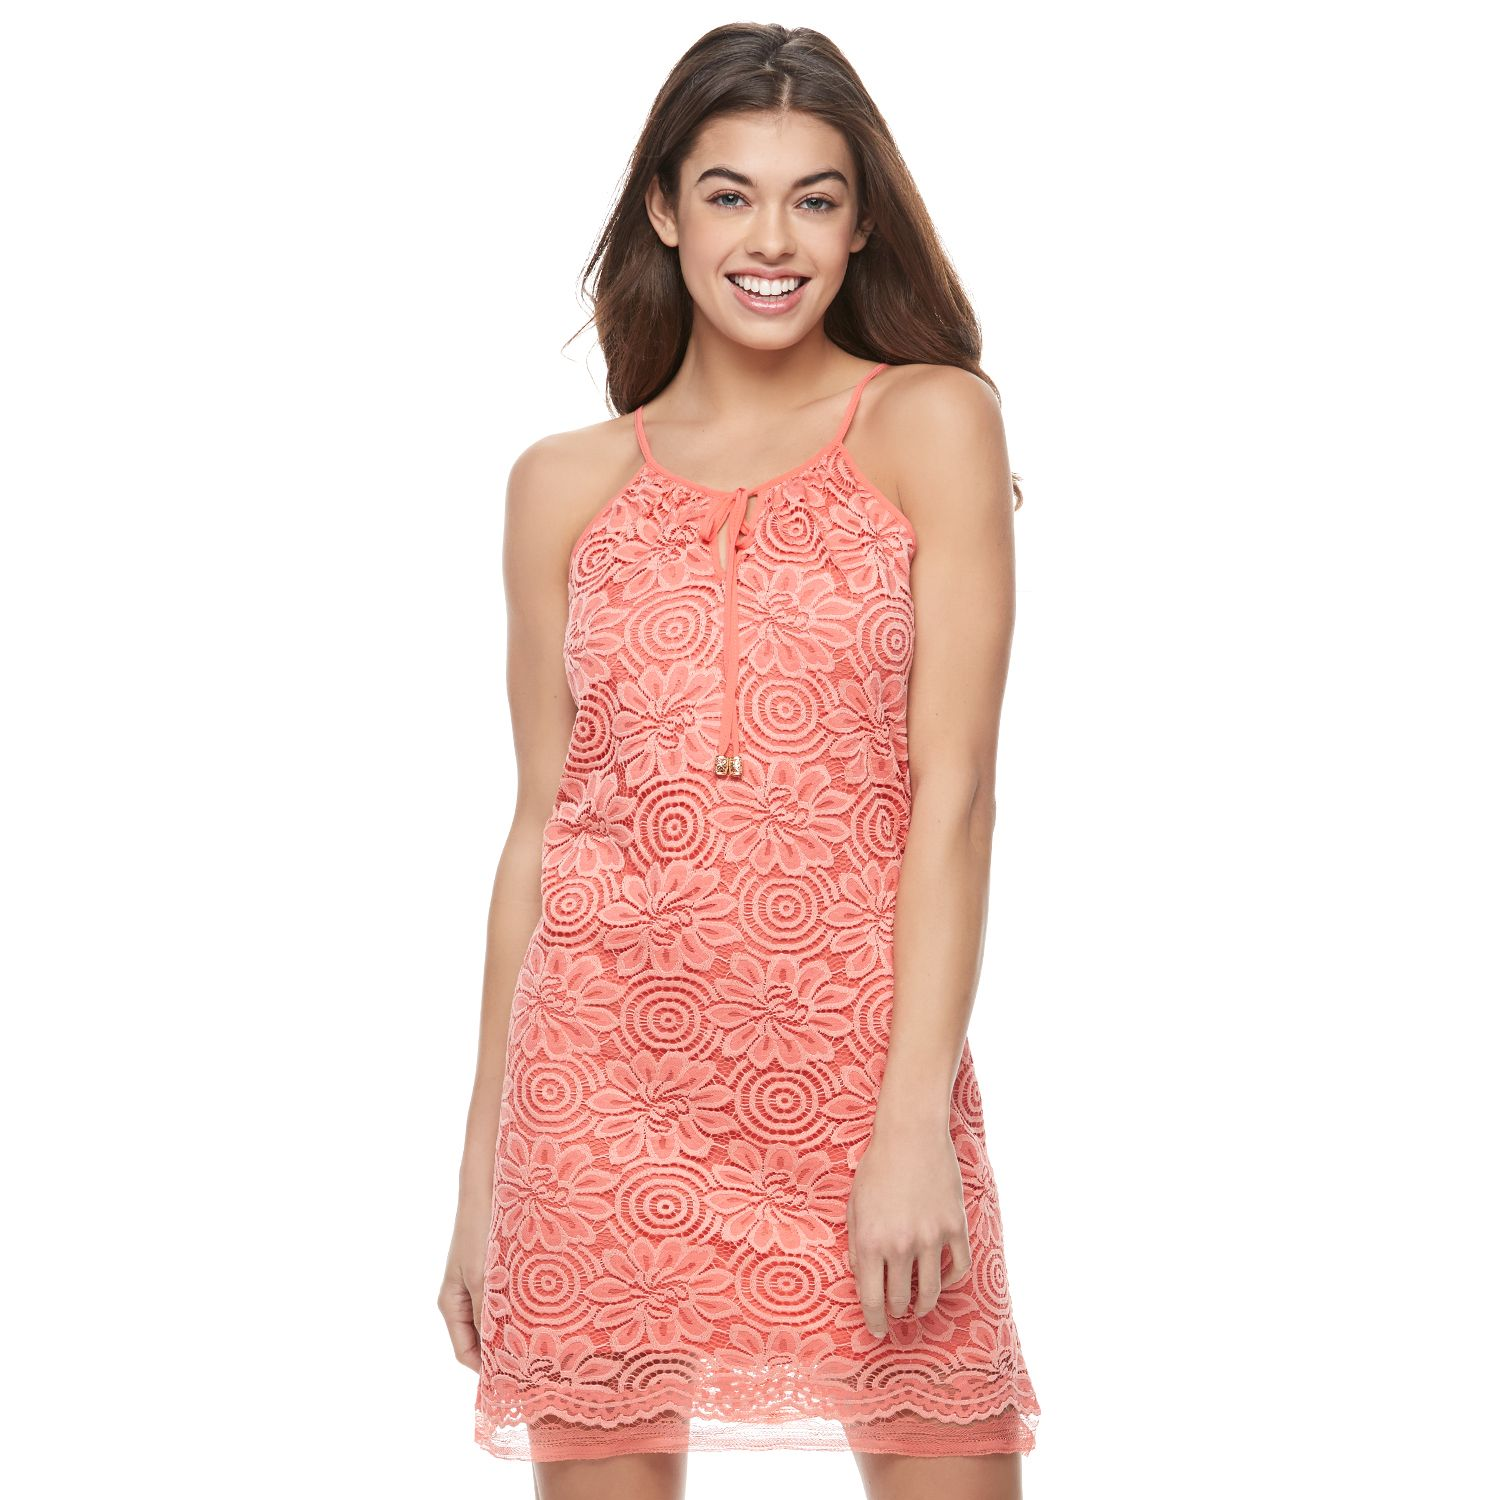 Lily rose lace strapless dress